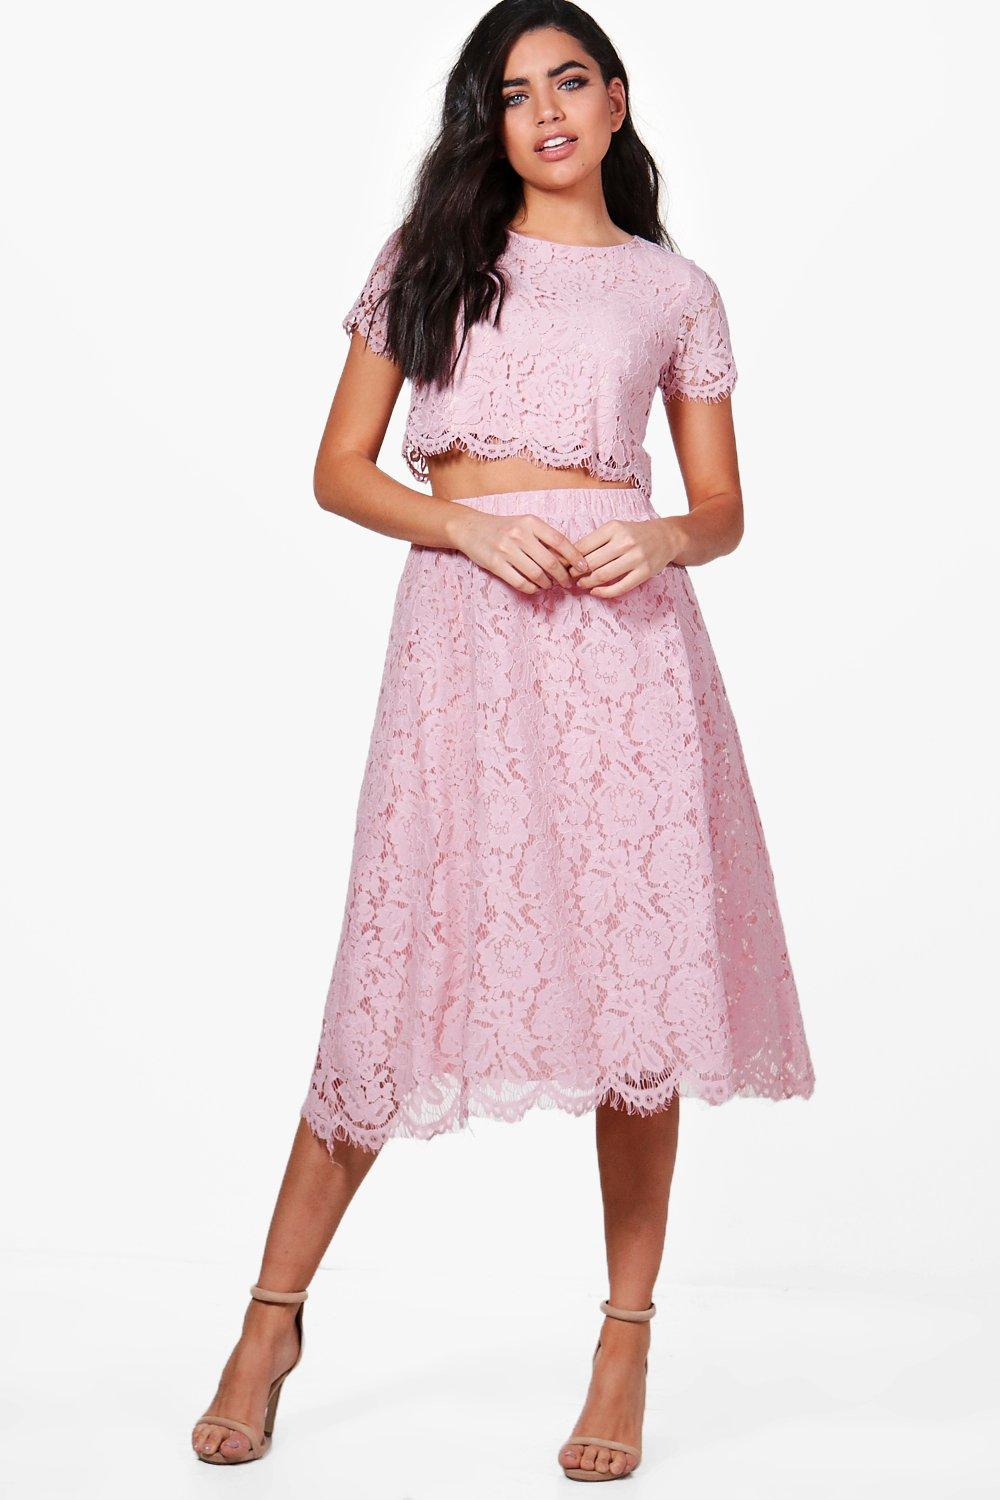 Boutique Aria Lace Full Midi Skirt Co-Ord Set at boohoo.com